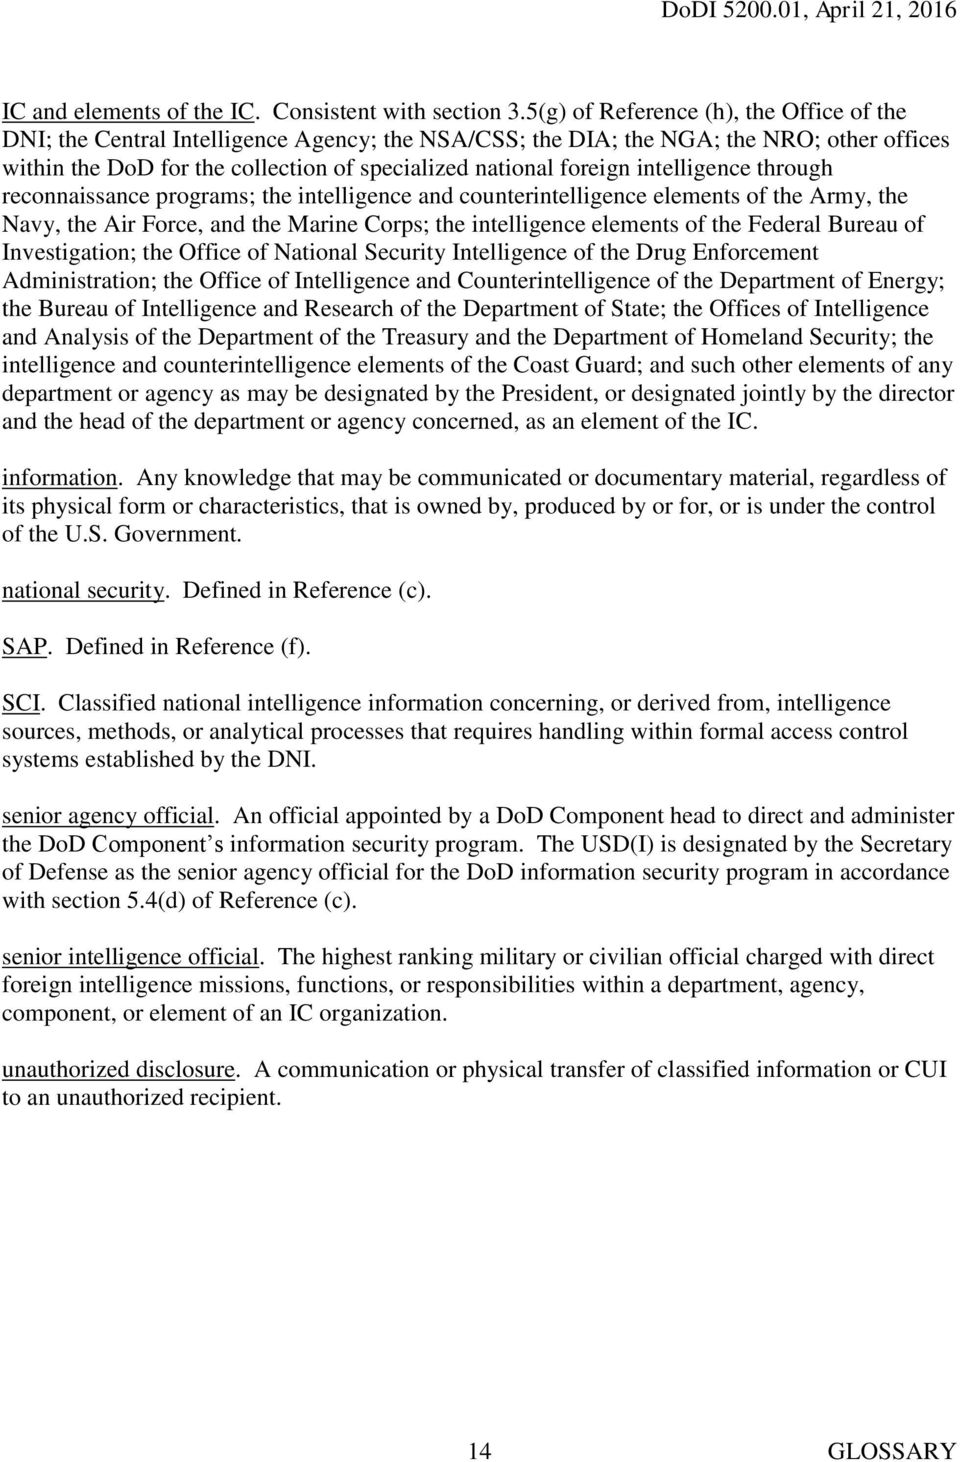 intelligence through reconnaissance programs; the intelligence and counterintelligence elements of the Army, the Navy, the Air Force, and the Marine Corps; the intelligence elements of the Federal